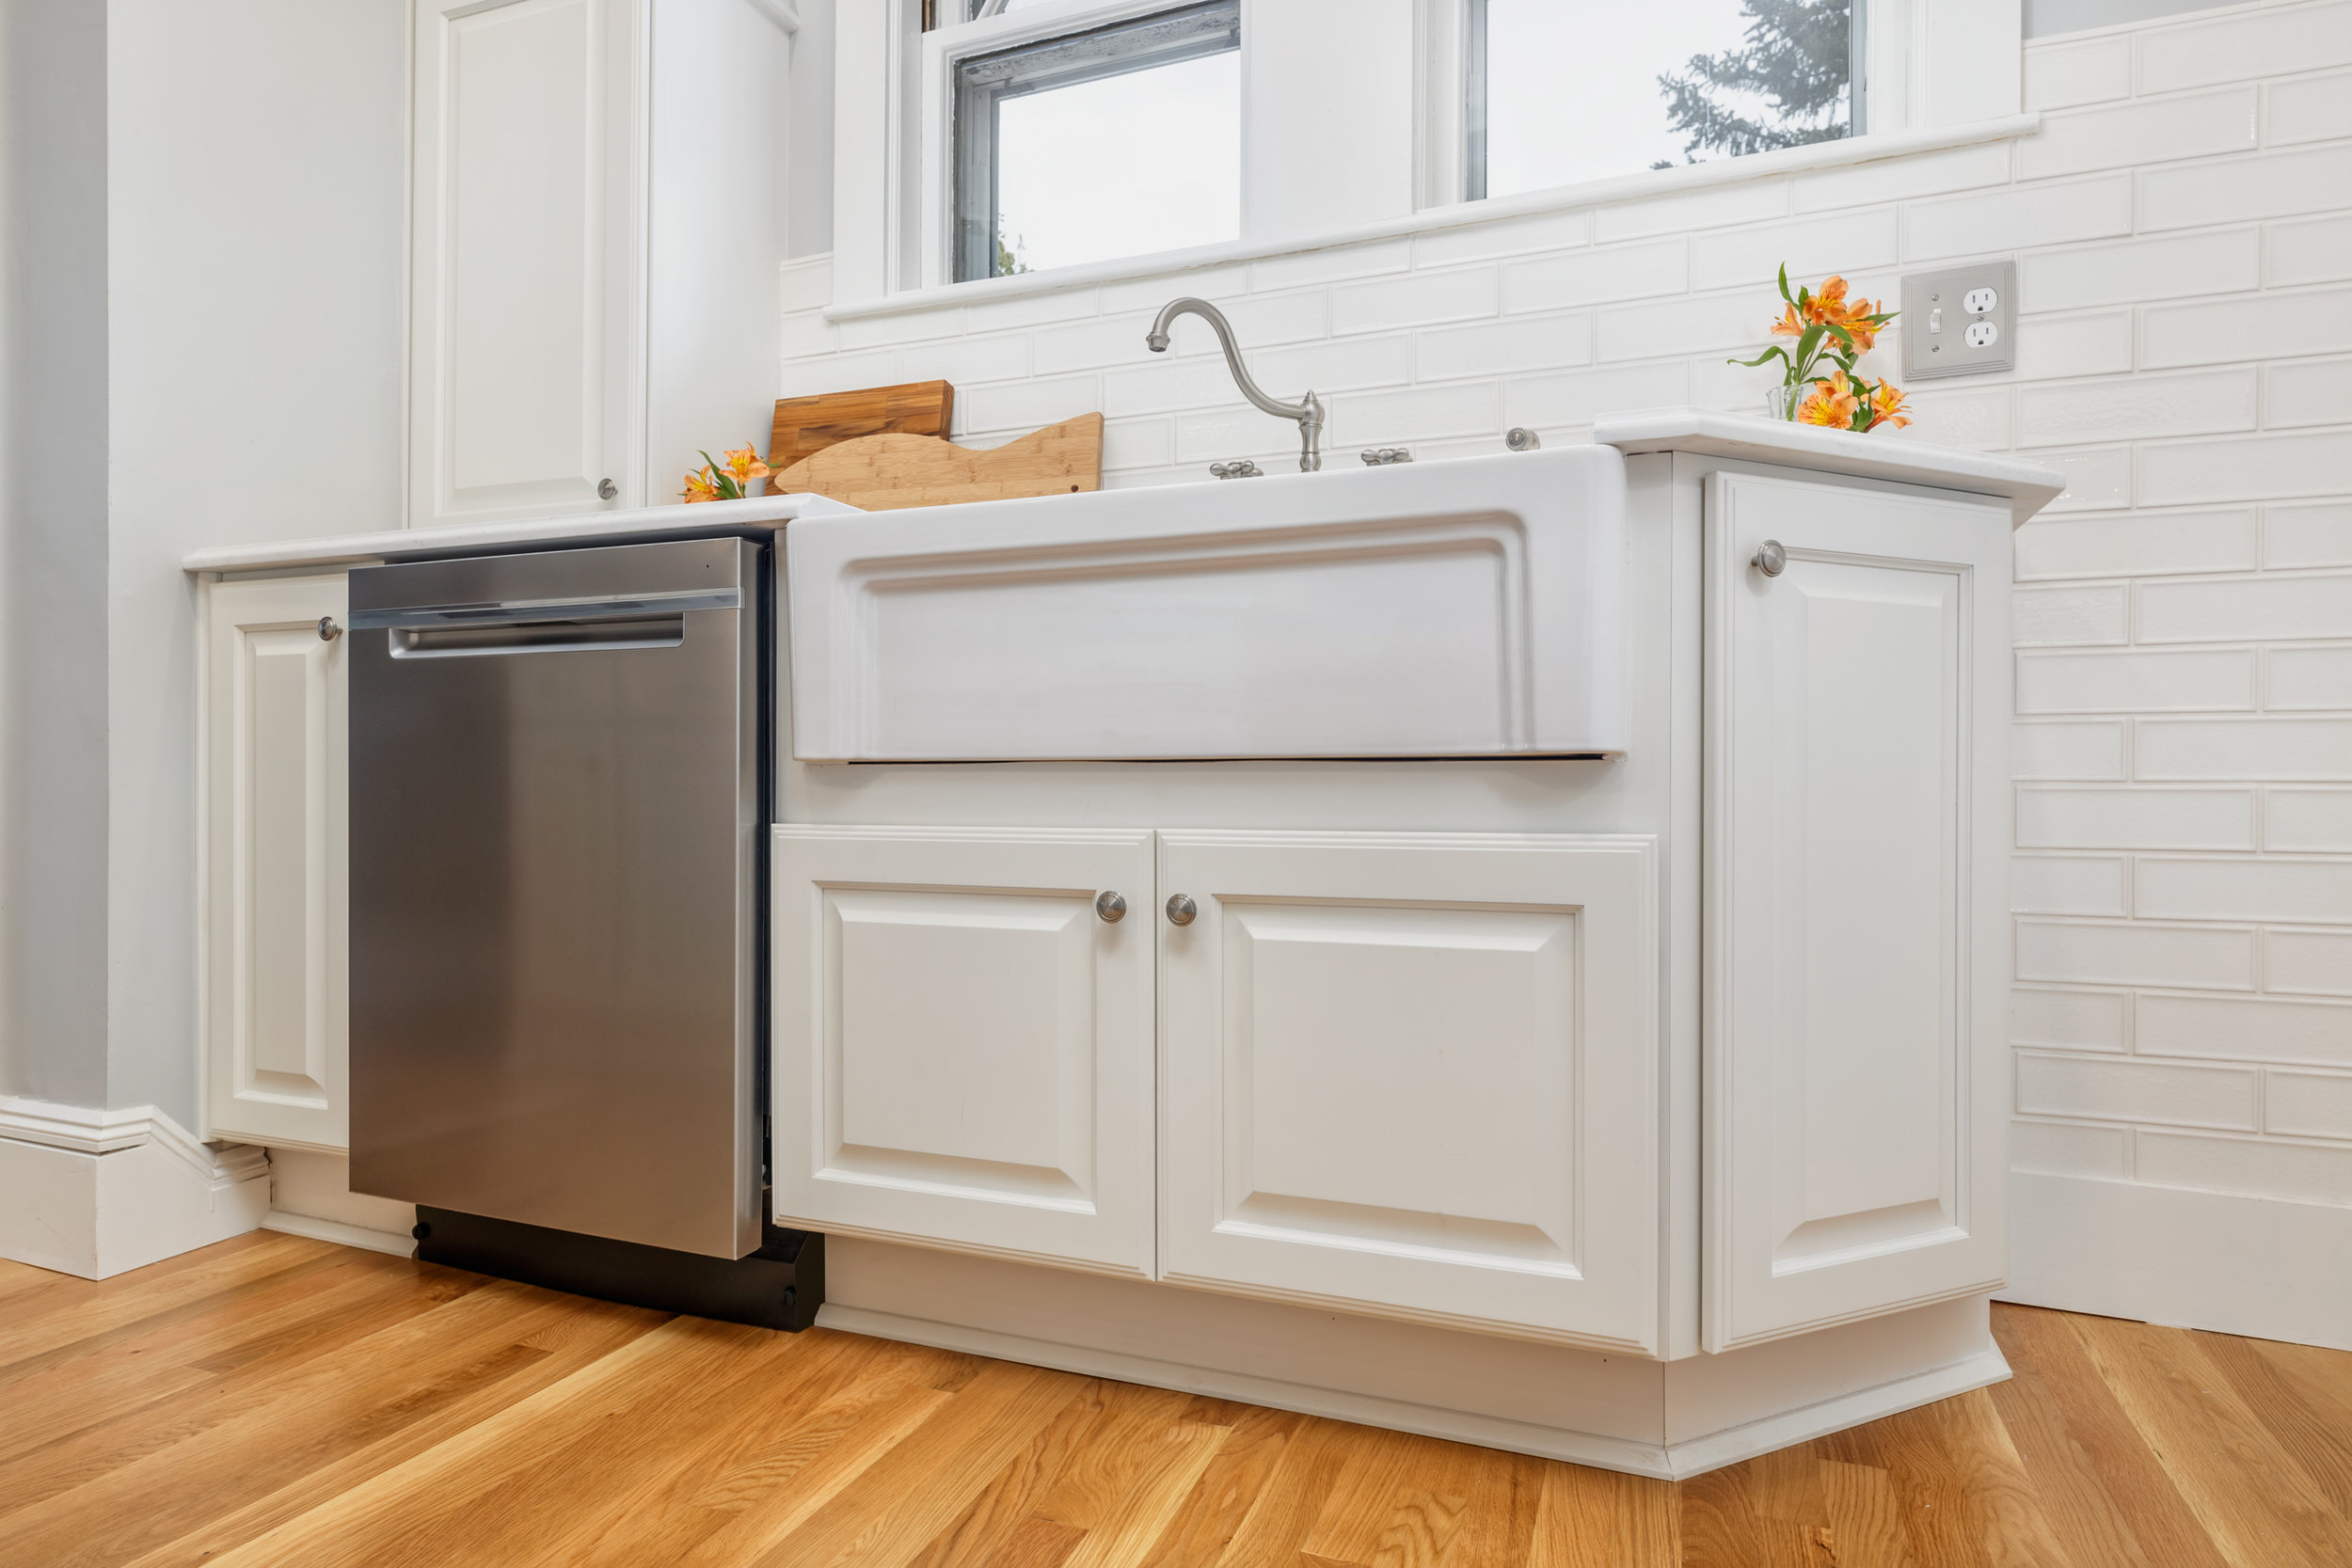 Dishwasher sink tile and floor detail.jpg